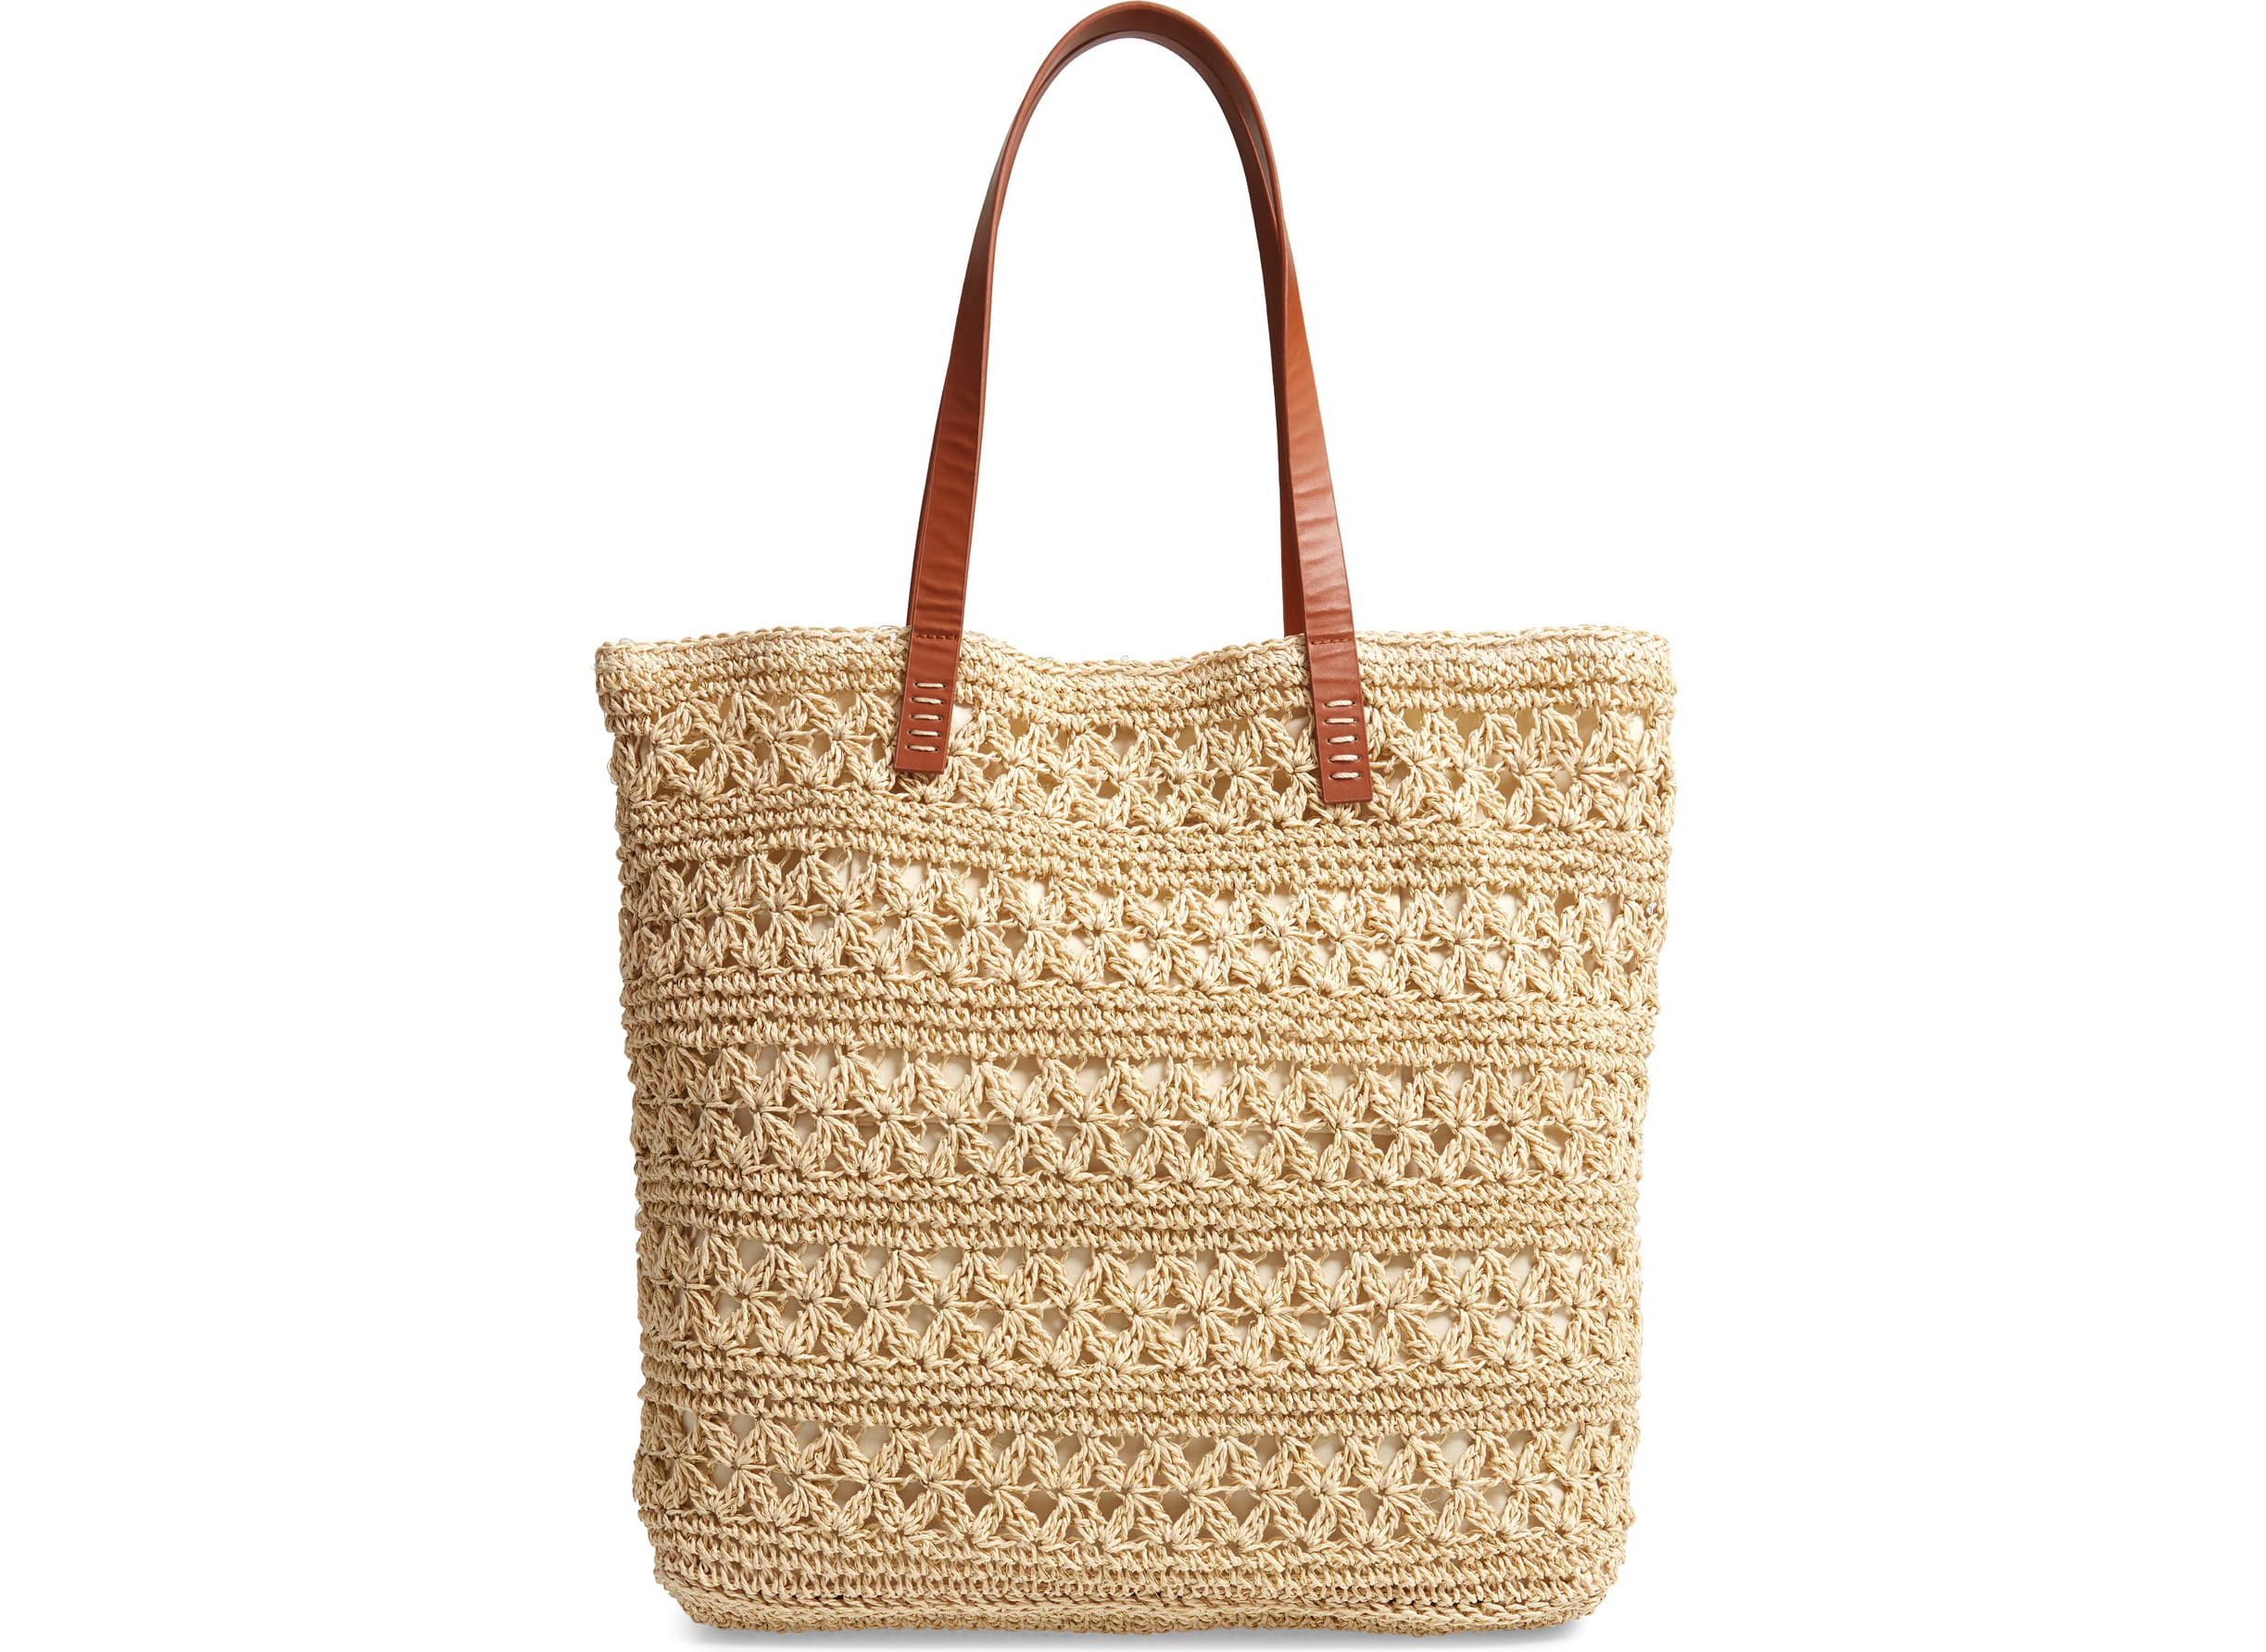 Packable Metallic Thread Woven Raffia Tote from Nordstrom